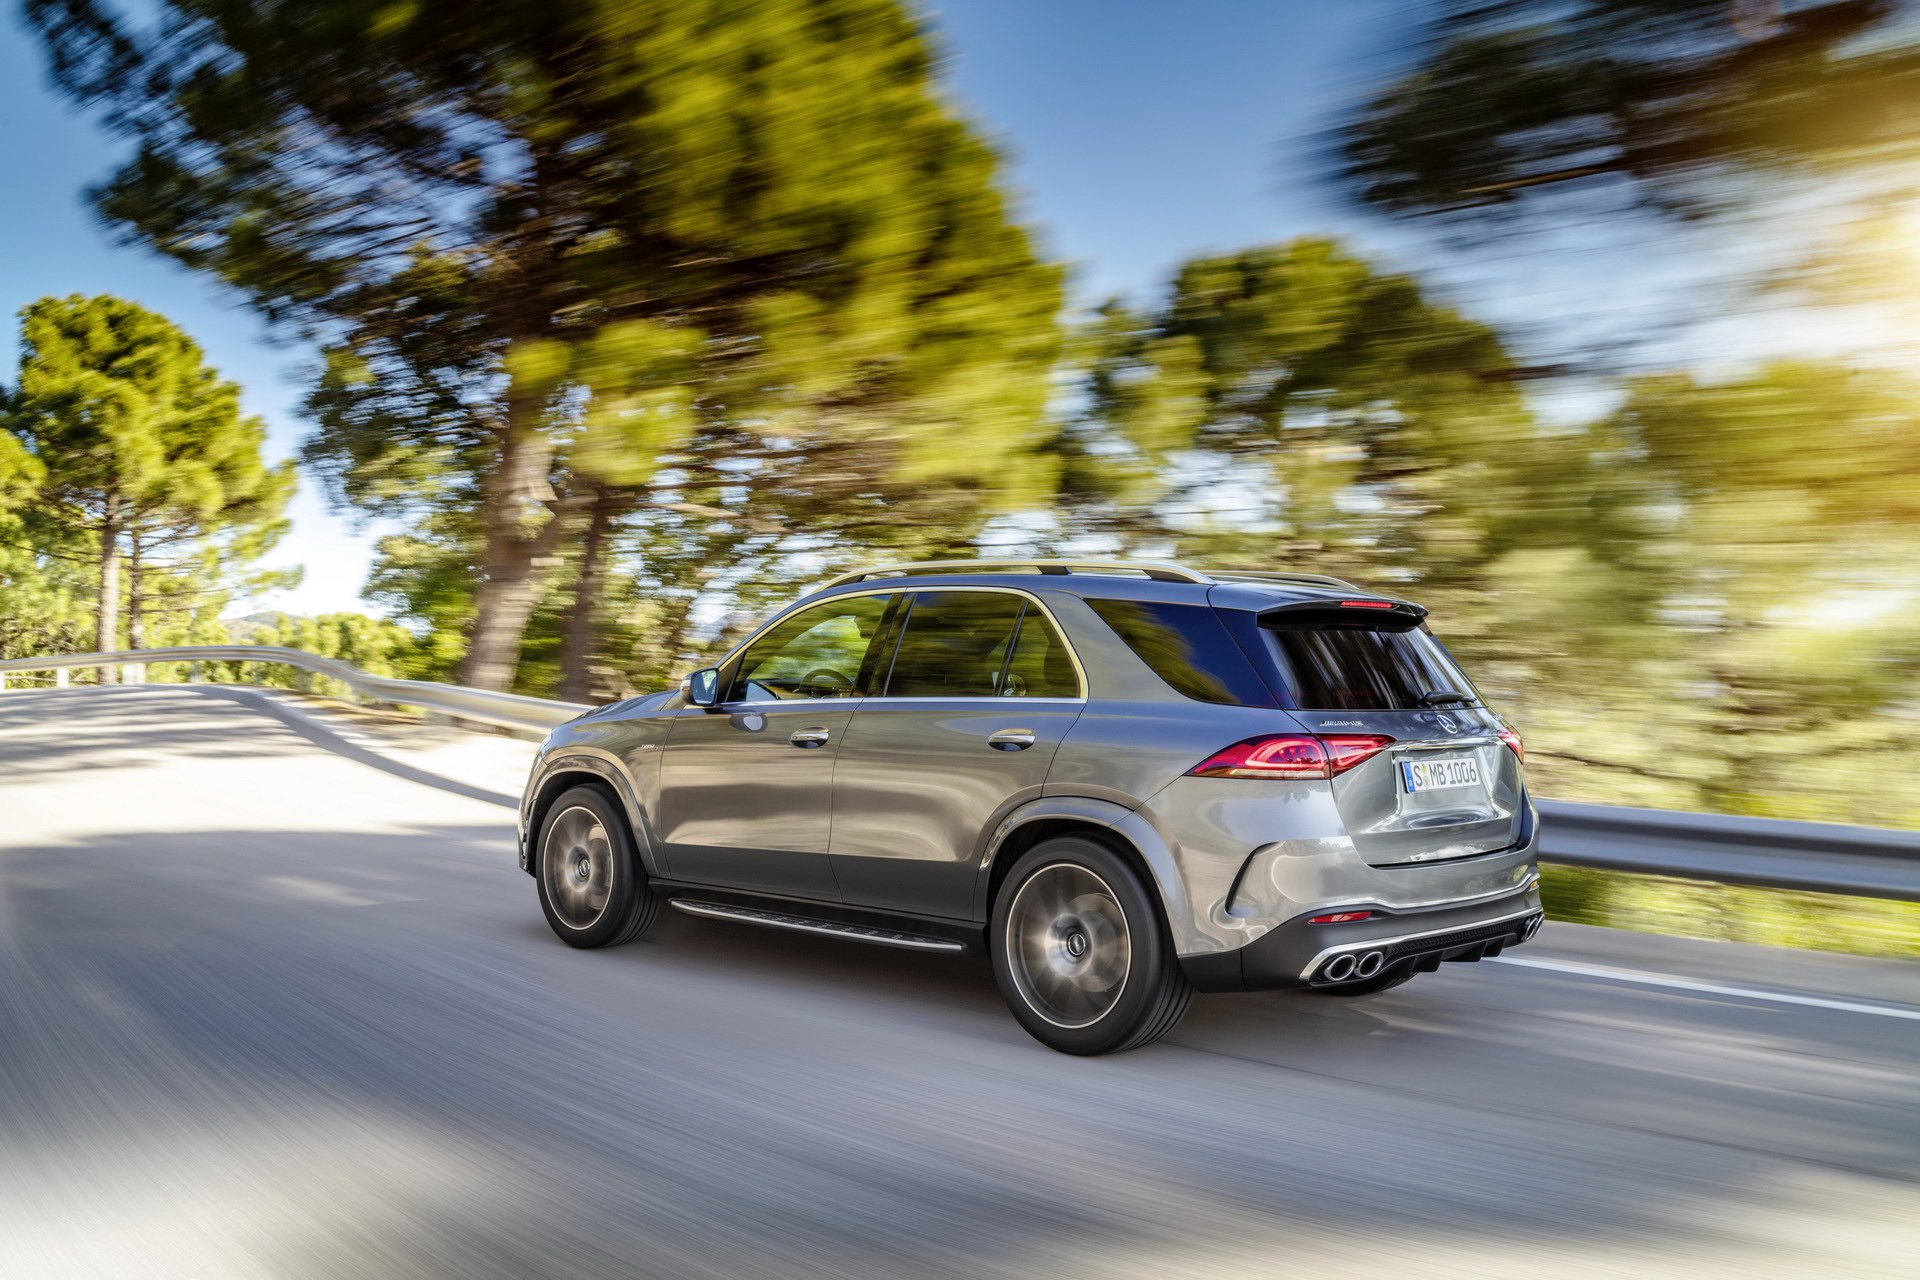 2020 Mercedes-AMG GLE 53 4MATIC+ (Color: Selenite Grey) Rear Three-Quarter Wallpapers (4)